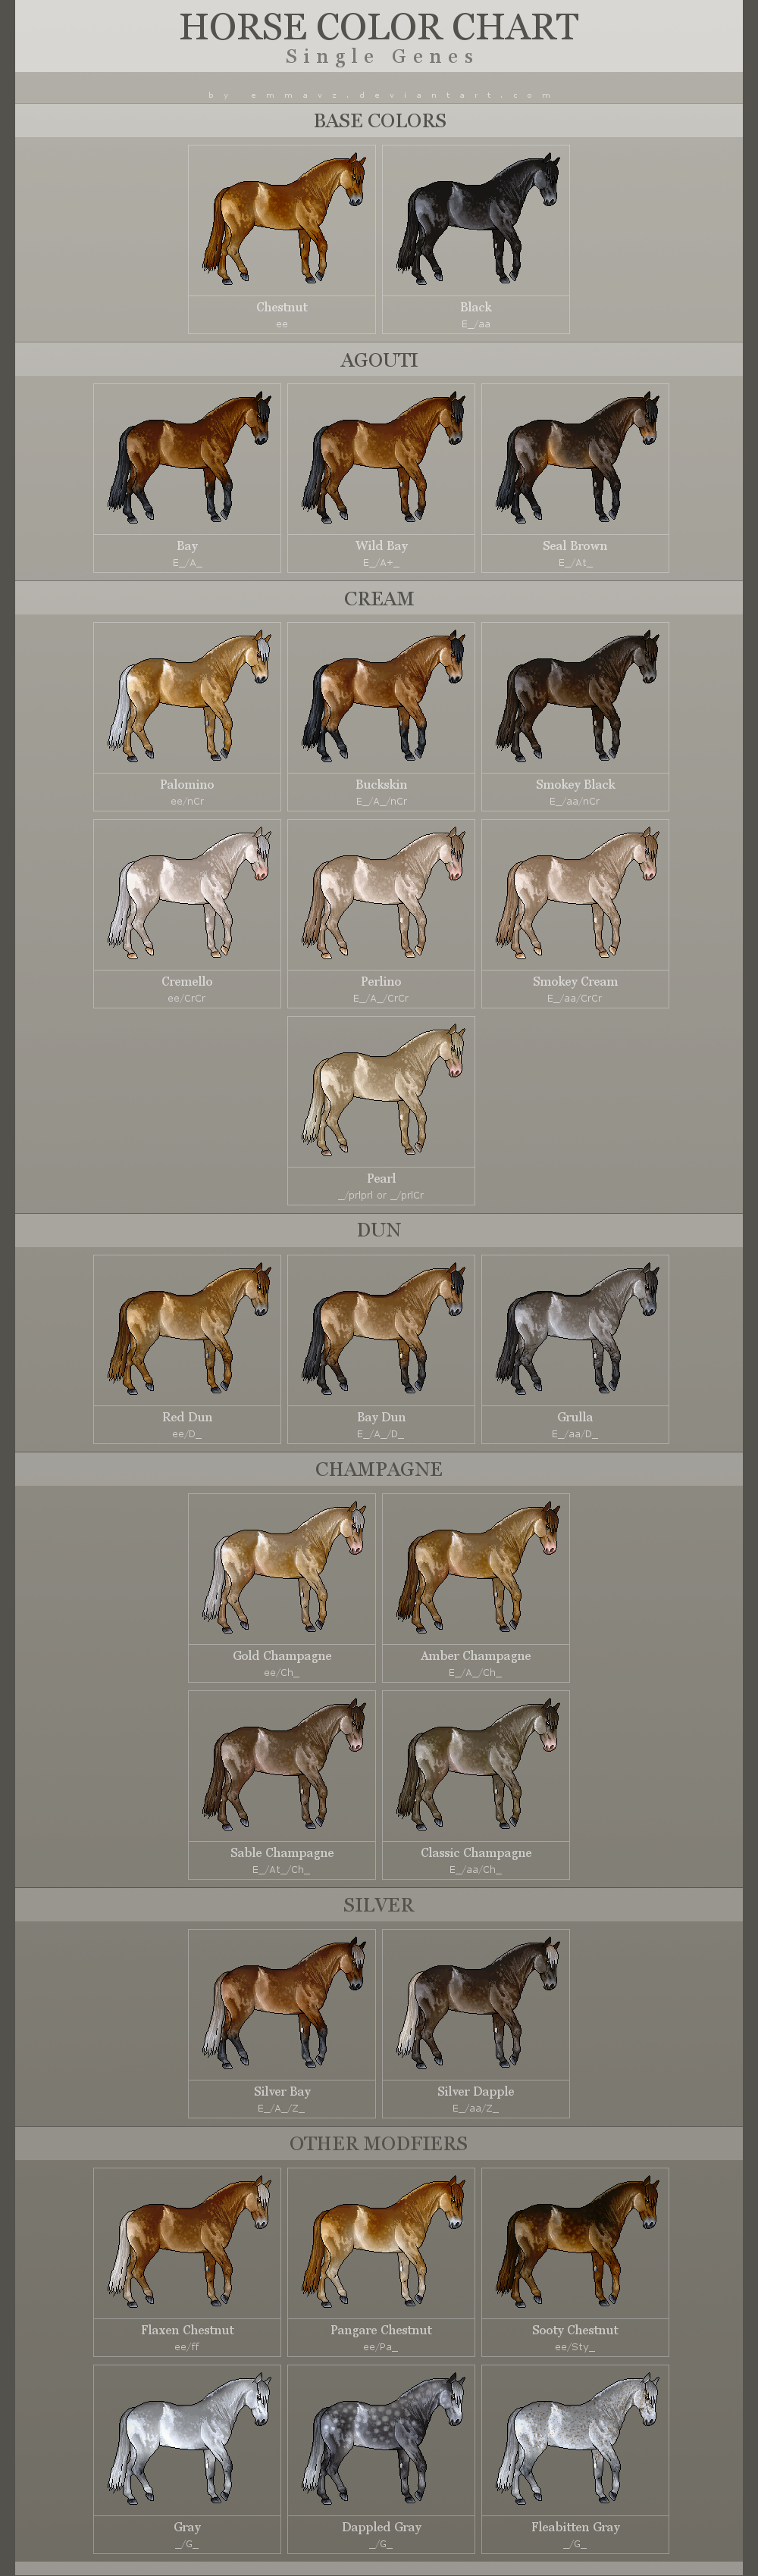 Horse color chart single genes by emmavz on deviantart horse color chart single genes by emmavz on deviantart nvjuhfo Choice Image